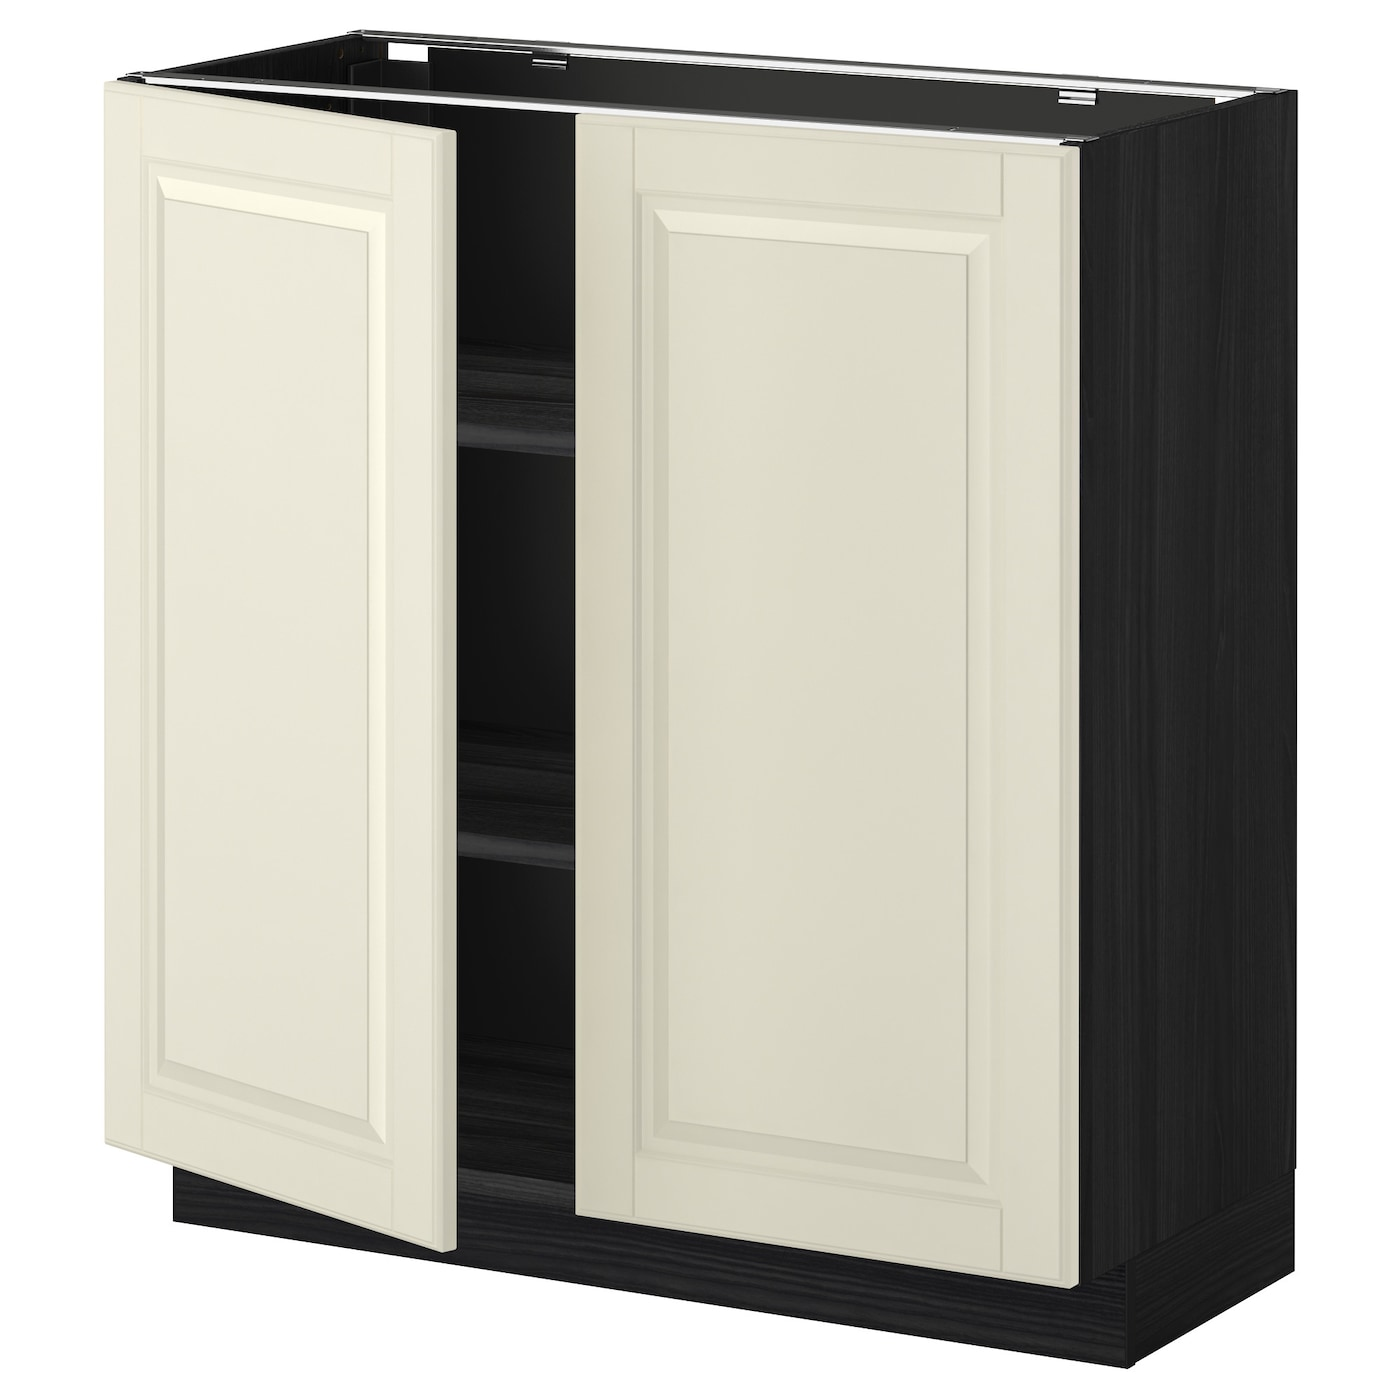 Metod base cabinet with shelves 2 doors black bodbyn off for Off the shelf cabinets